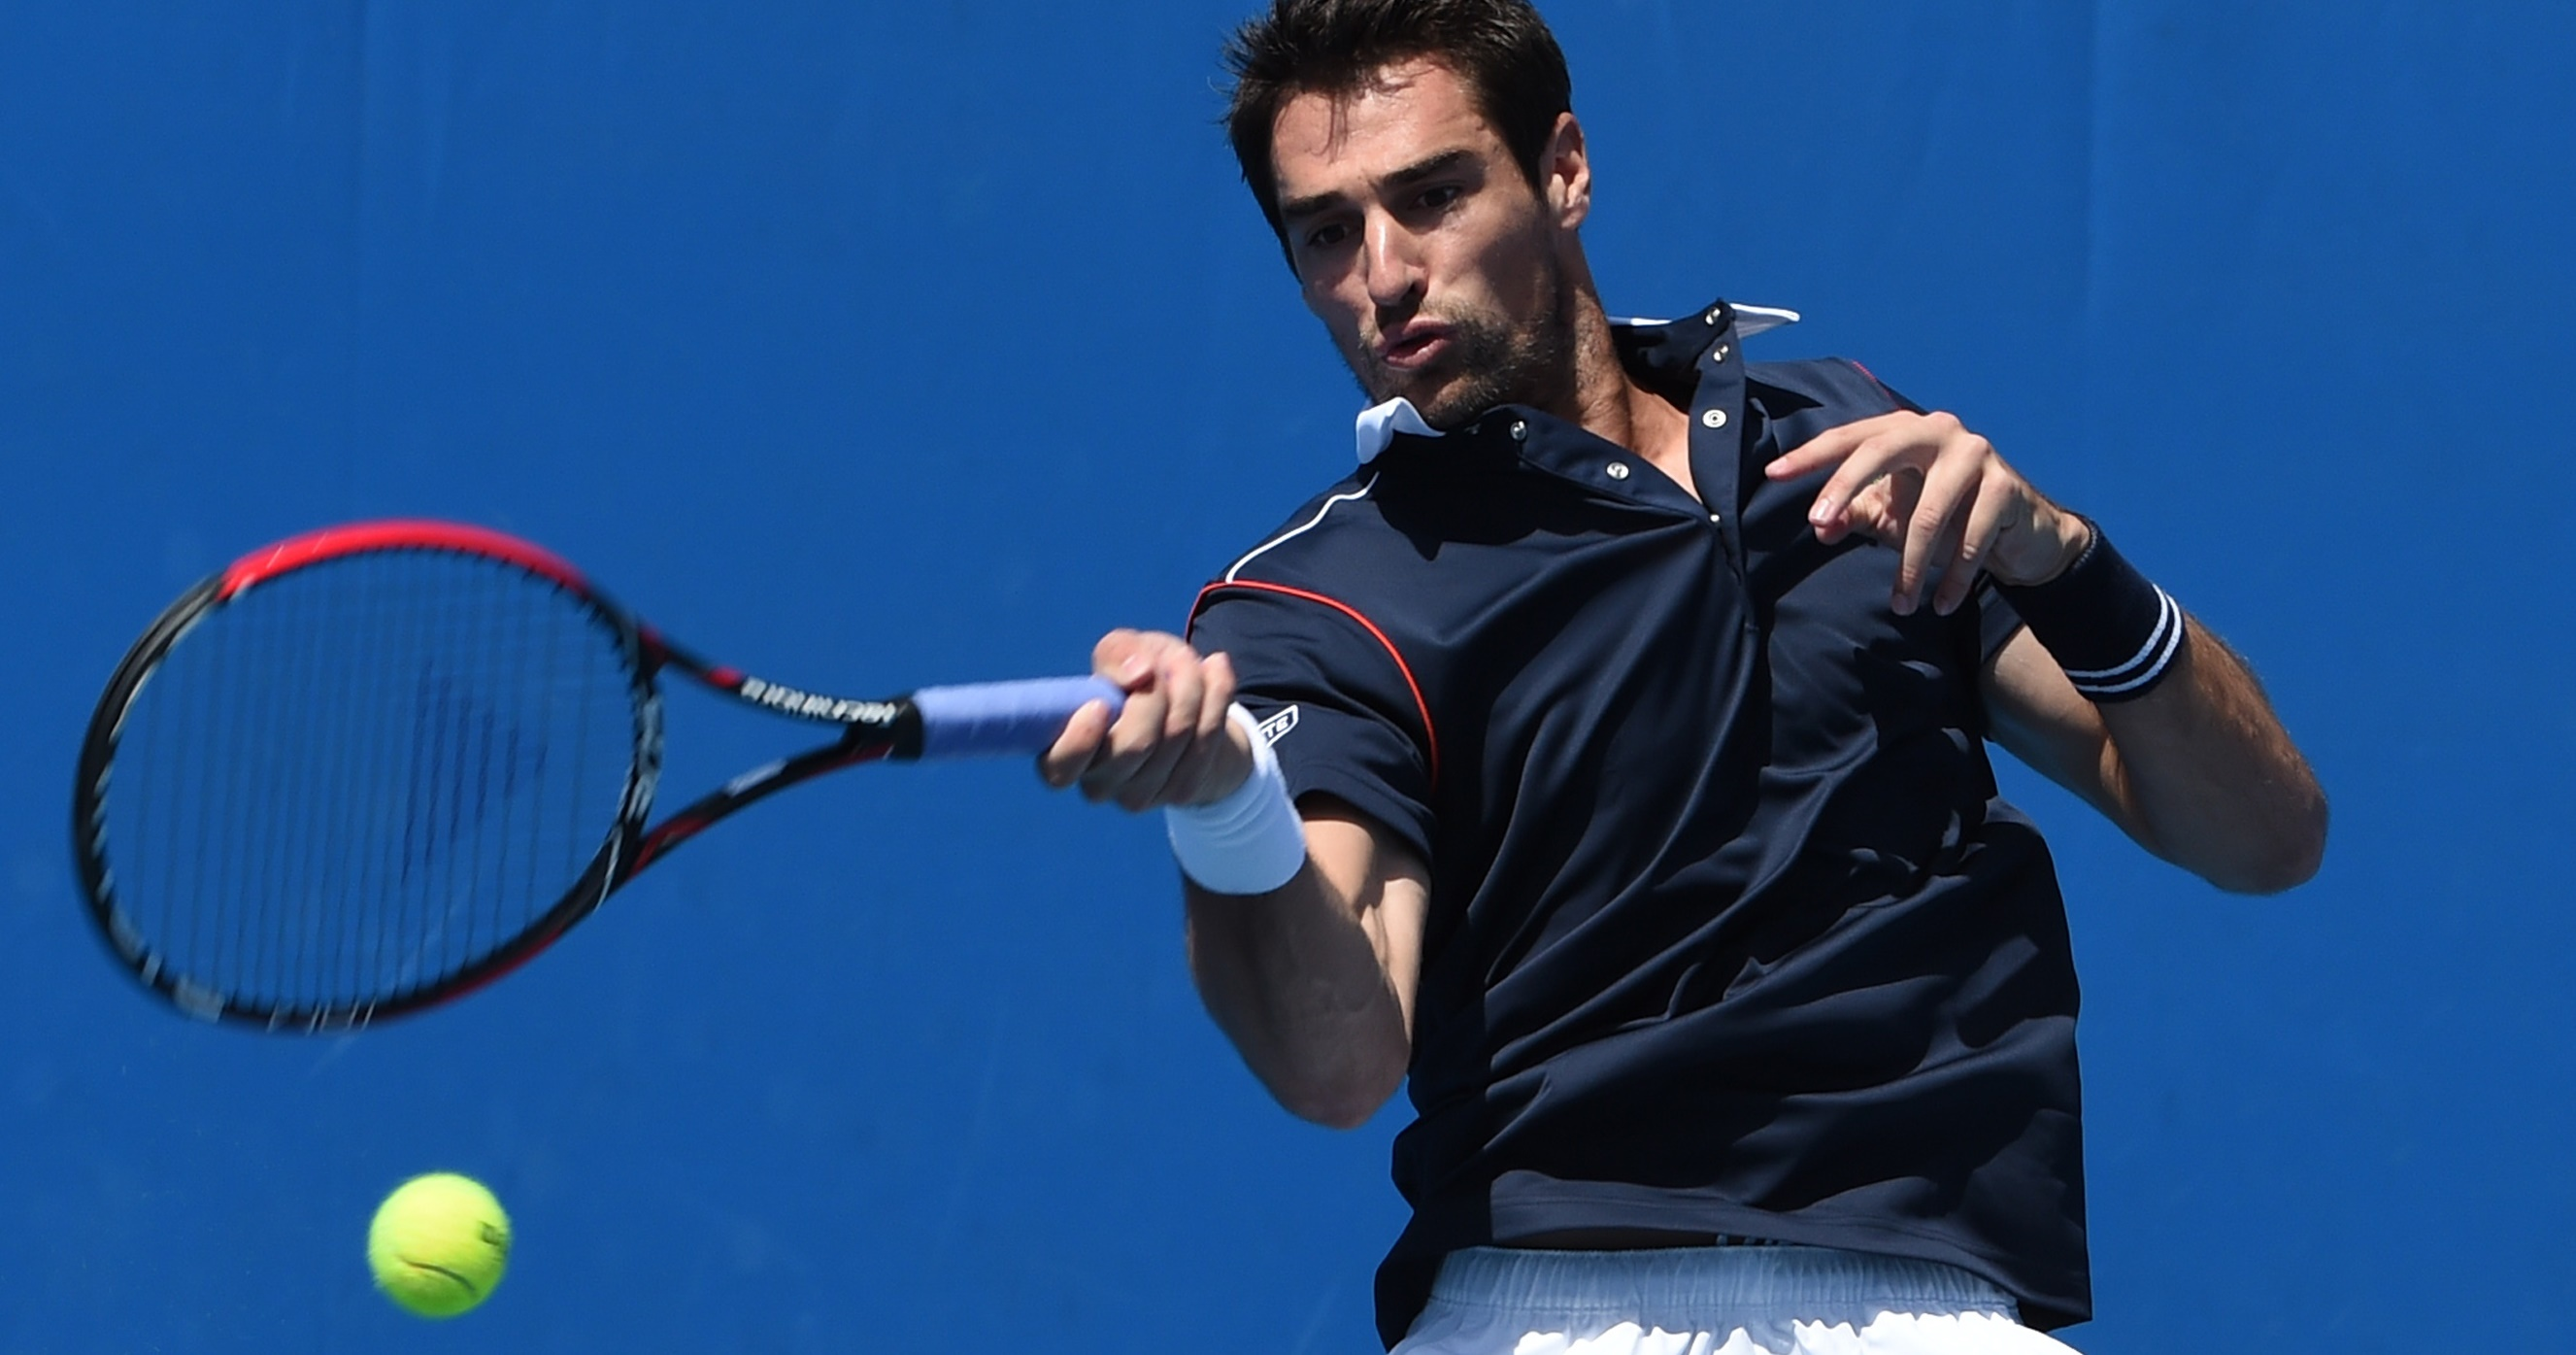 Monte-Carlo : Chardy s'offre une affiche